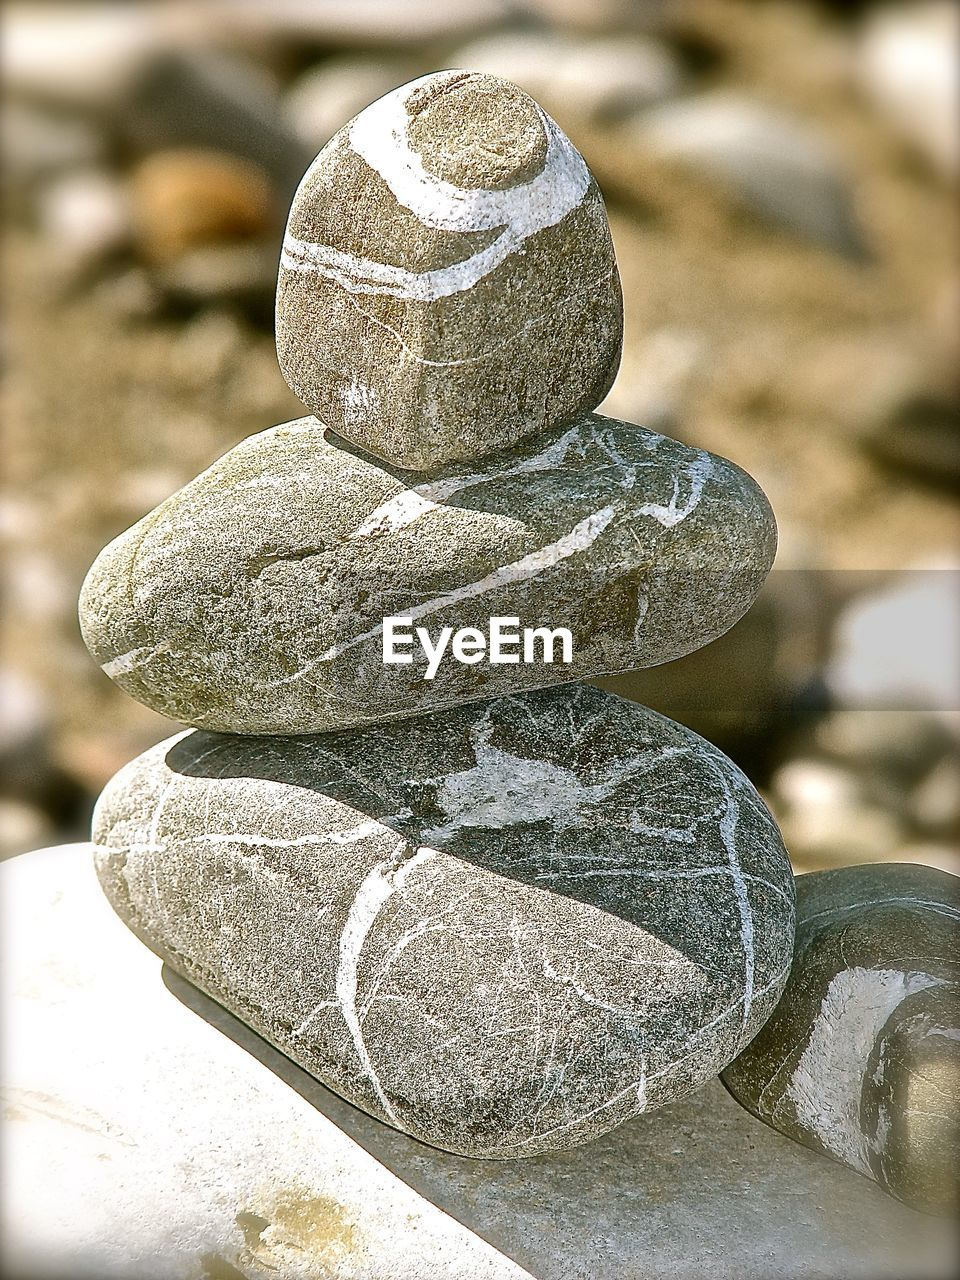 solid, rock, stone - object, no people, stone, focus on foreground, balance, nature, stack, day, close-up, outdoors, rock - object, zen-like, sunlight, pebble, pattern, textured, tranquility, still life